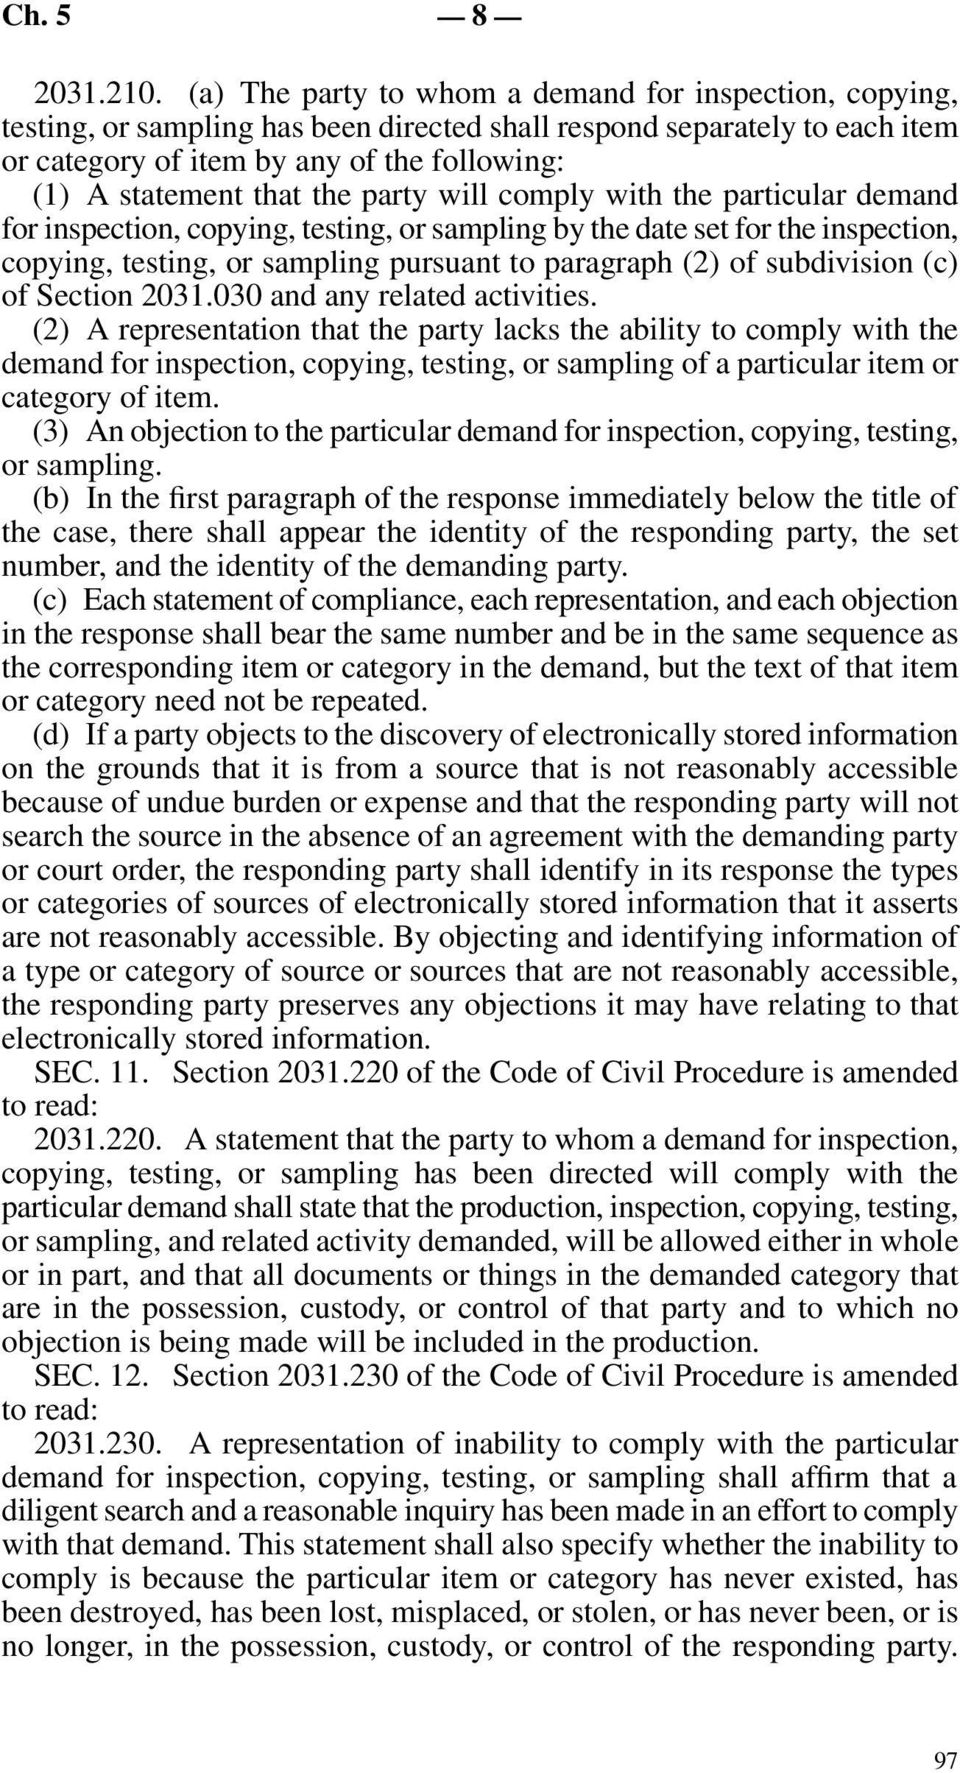 the party will comply with the particular demand for inspection, copying, testing, or sampling by the date set for the inspection, copying, testing, or sampling pursuant to paragraph (2) of